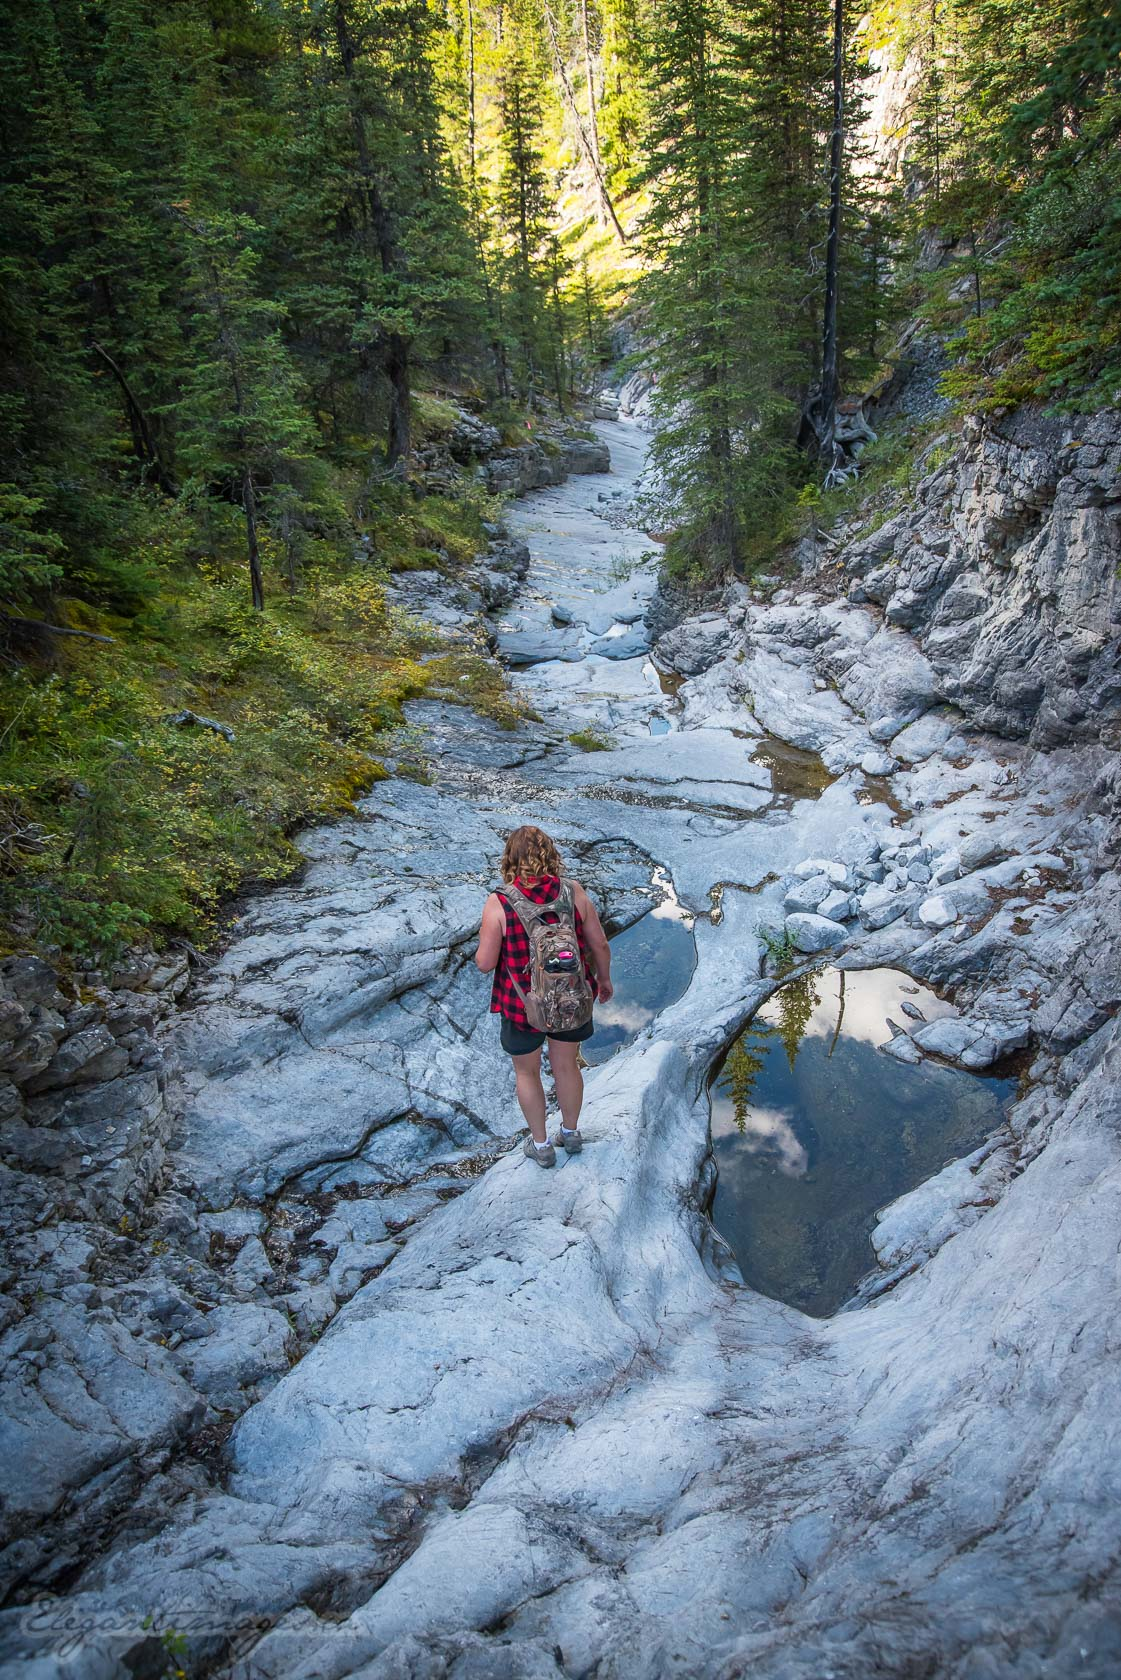 Compression Cirque Hike- meandering waterfall path through the rocky gorge